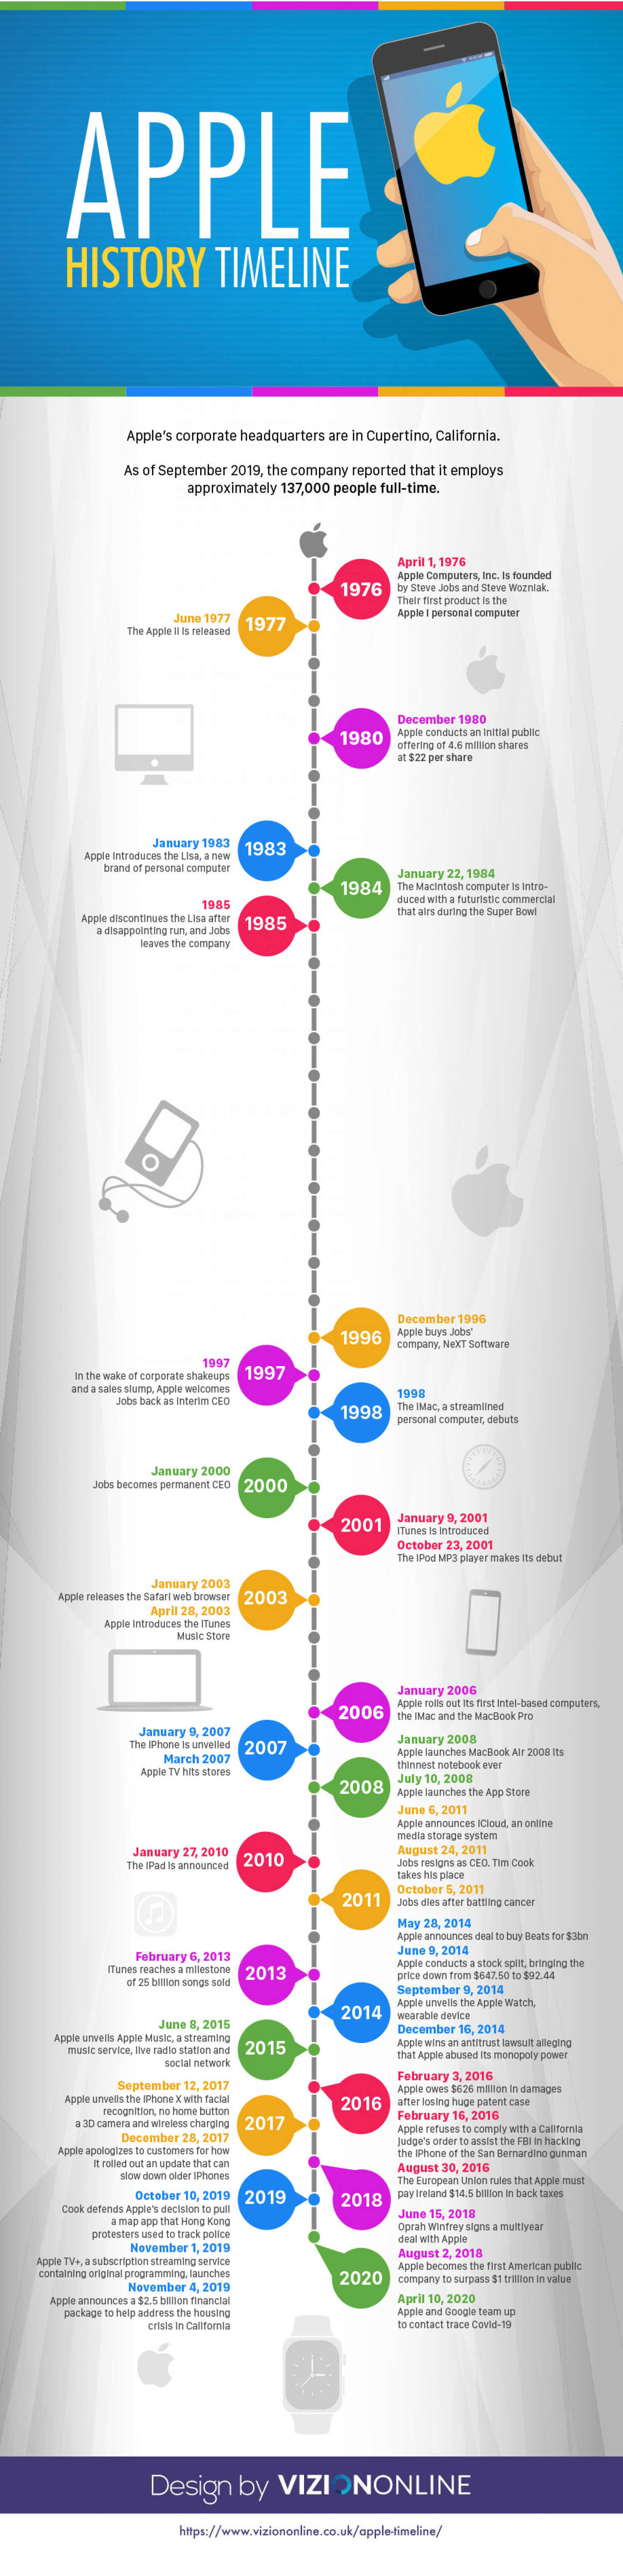 Apple History Timeline Infographic